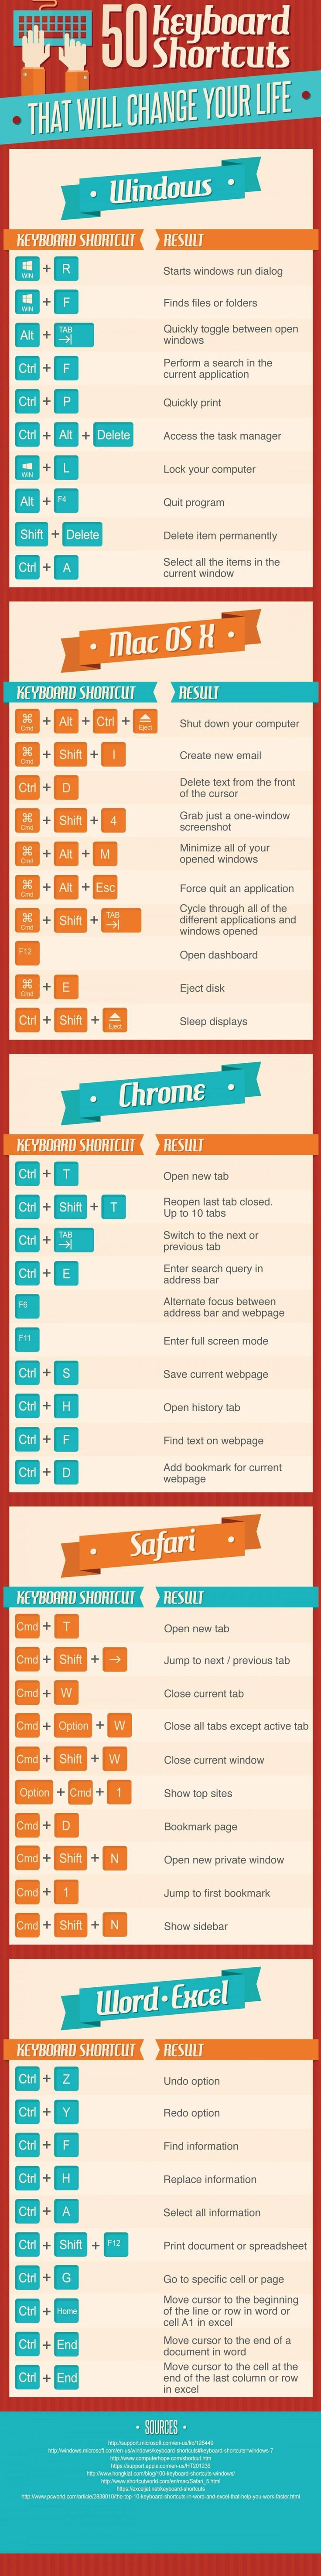 50 Keyboard #Shortcuts That Will Change Your #Life - Do you fancy an infographic? There are a lot of them online, but if you want your own please visit http://linfografico.com/en/prices/ Online girano molte infografiche, se ne vuoi realizzare una tutta tua visita http://www.linfografico.com/prezzi/ Maybe something for https://Addgeeks.com ?